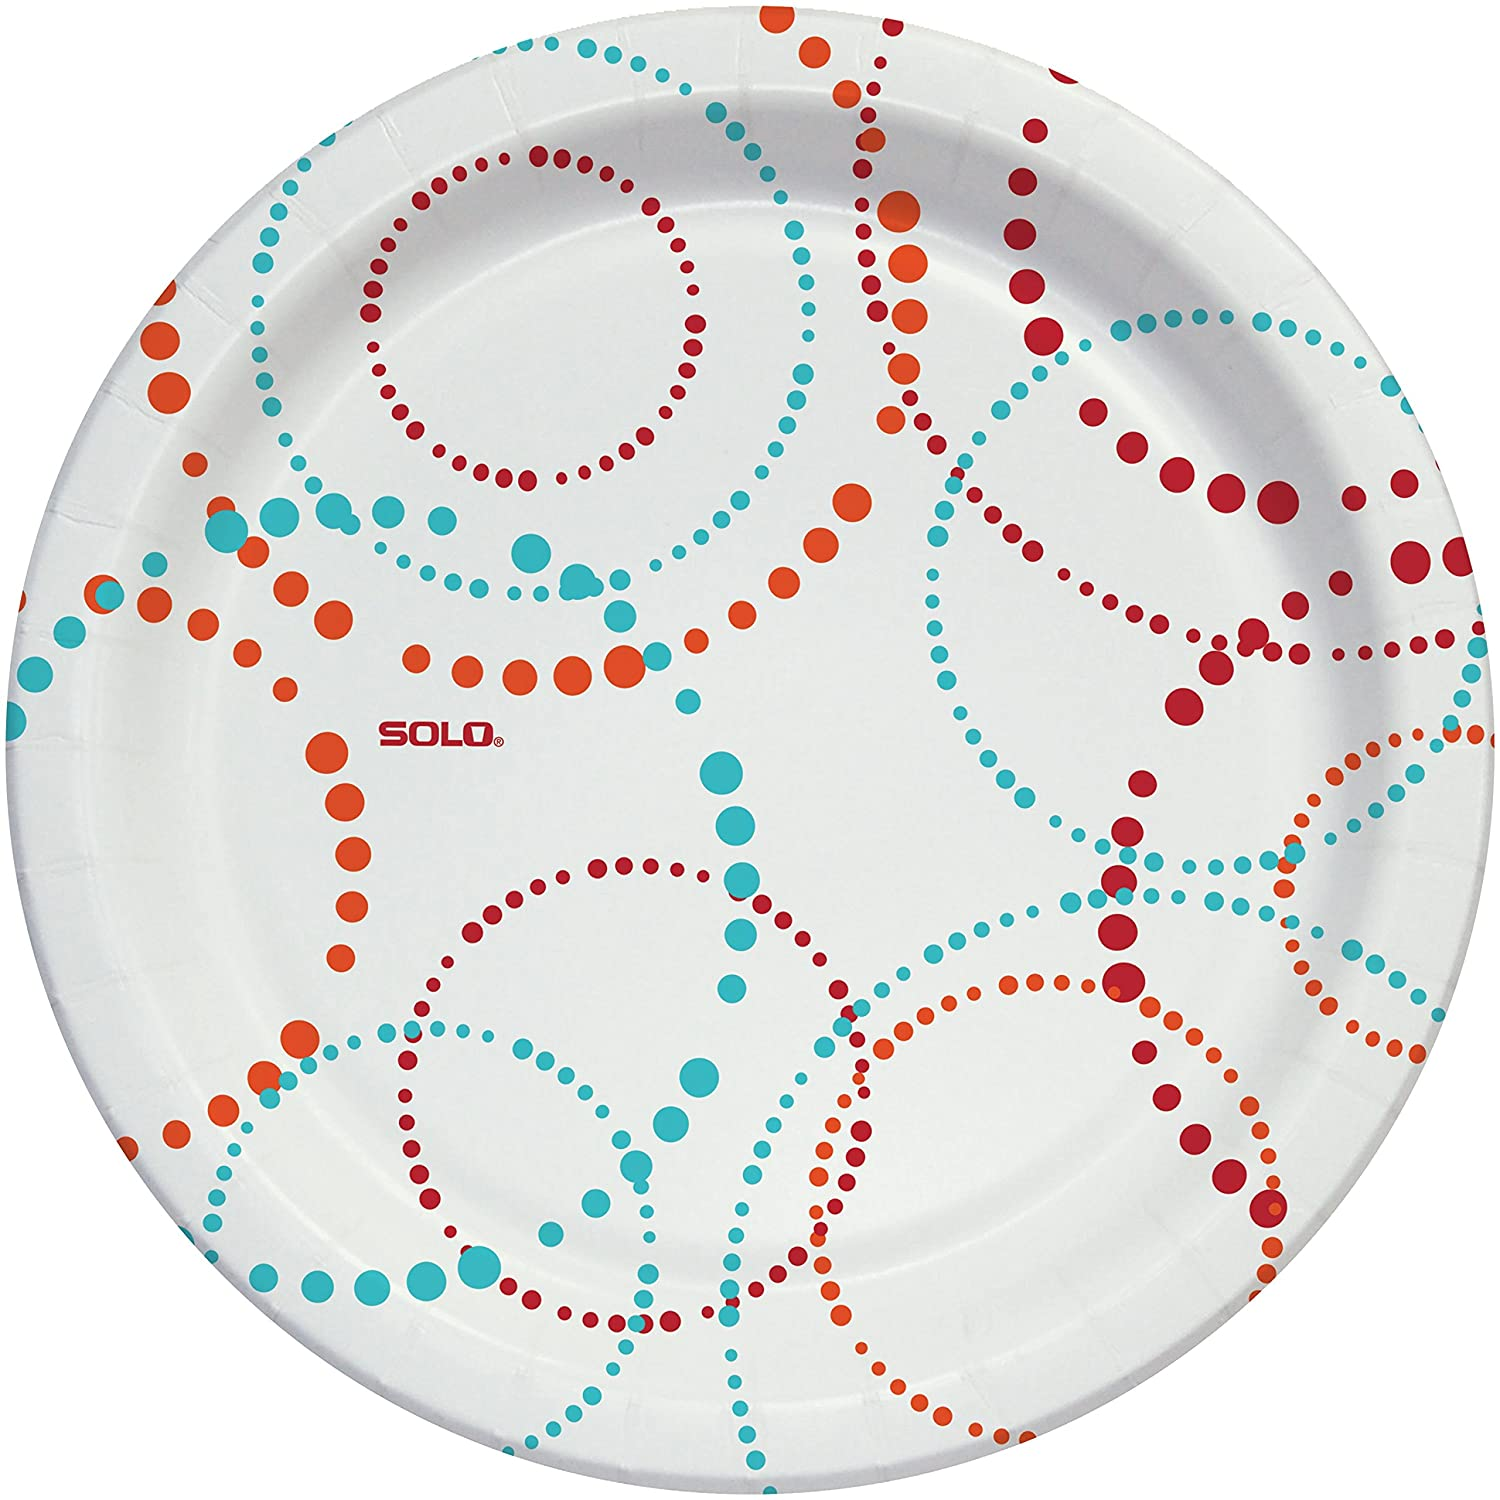 Solo Cup Any Day Paper Plates, 8.5 Inch, 376 Count